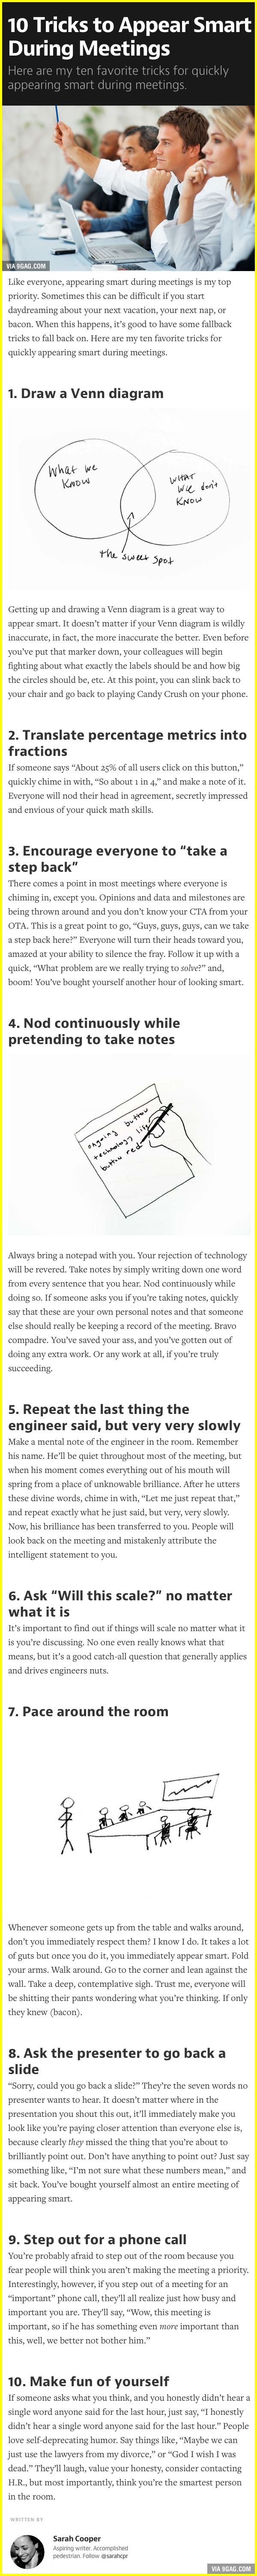 10 Tricks to Appear Smart During Meetings (this has to be the secret to IBM execs)